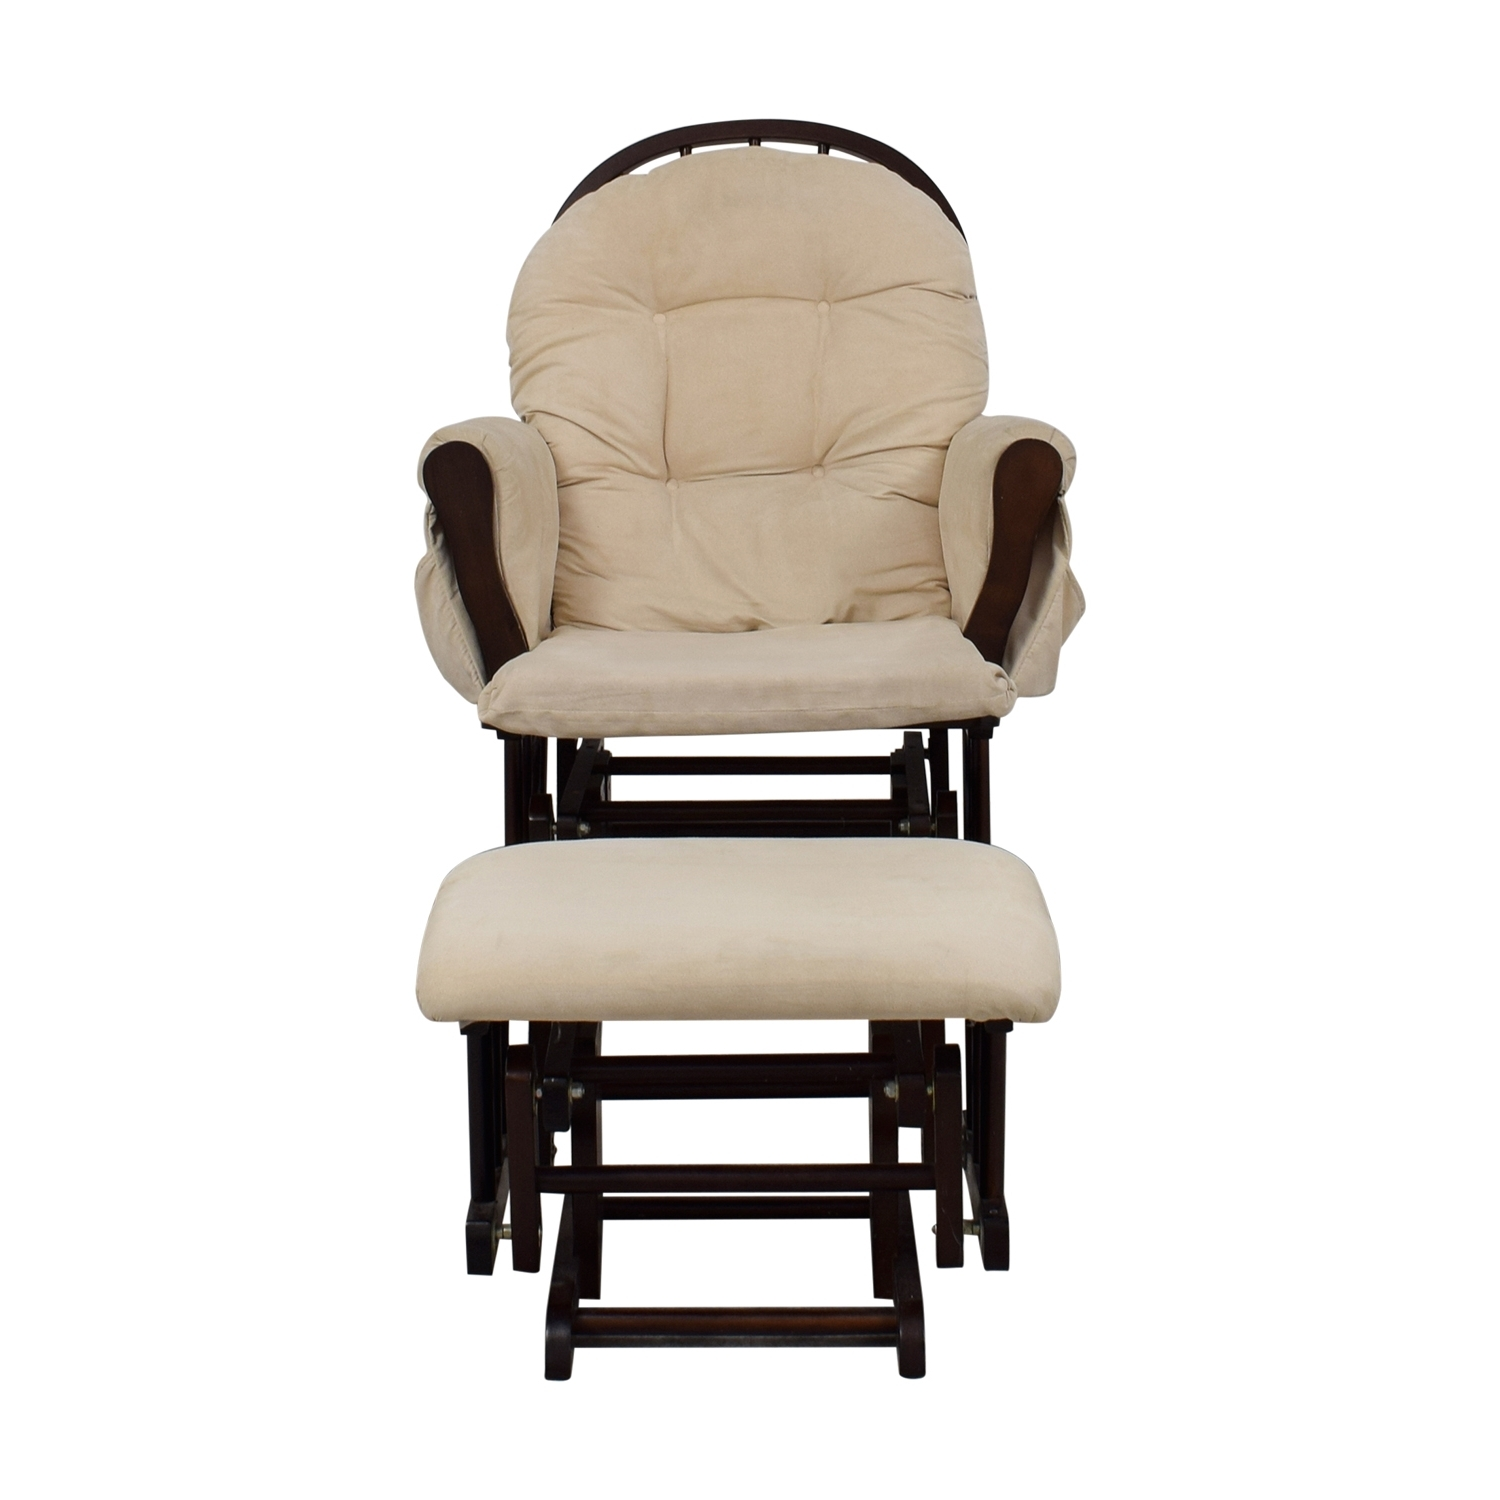 [%44% Off – Beige And Wood Rocking Chair With Ottoman / Chairs Pertaining To Well Known Rocking Chairs With Ottoman|rocking Chairs With Ottoman For Most Current 44% Off – Beige And Wood Rocking Chair With Ottoman / Chairs|most Recently Released Rocking Chairs With Ottoman Pertaining To 44% Off – Beige And Wood Rocking Chair With Ottoman / Chairs|most Current 44% Off – Beige And Wood Rocking Chair With Ottoman / Chairs Pertaining To Rocking Chairs With Ottoman%] (View 12 of 20)